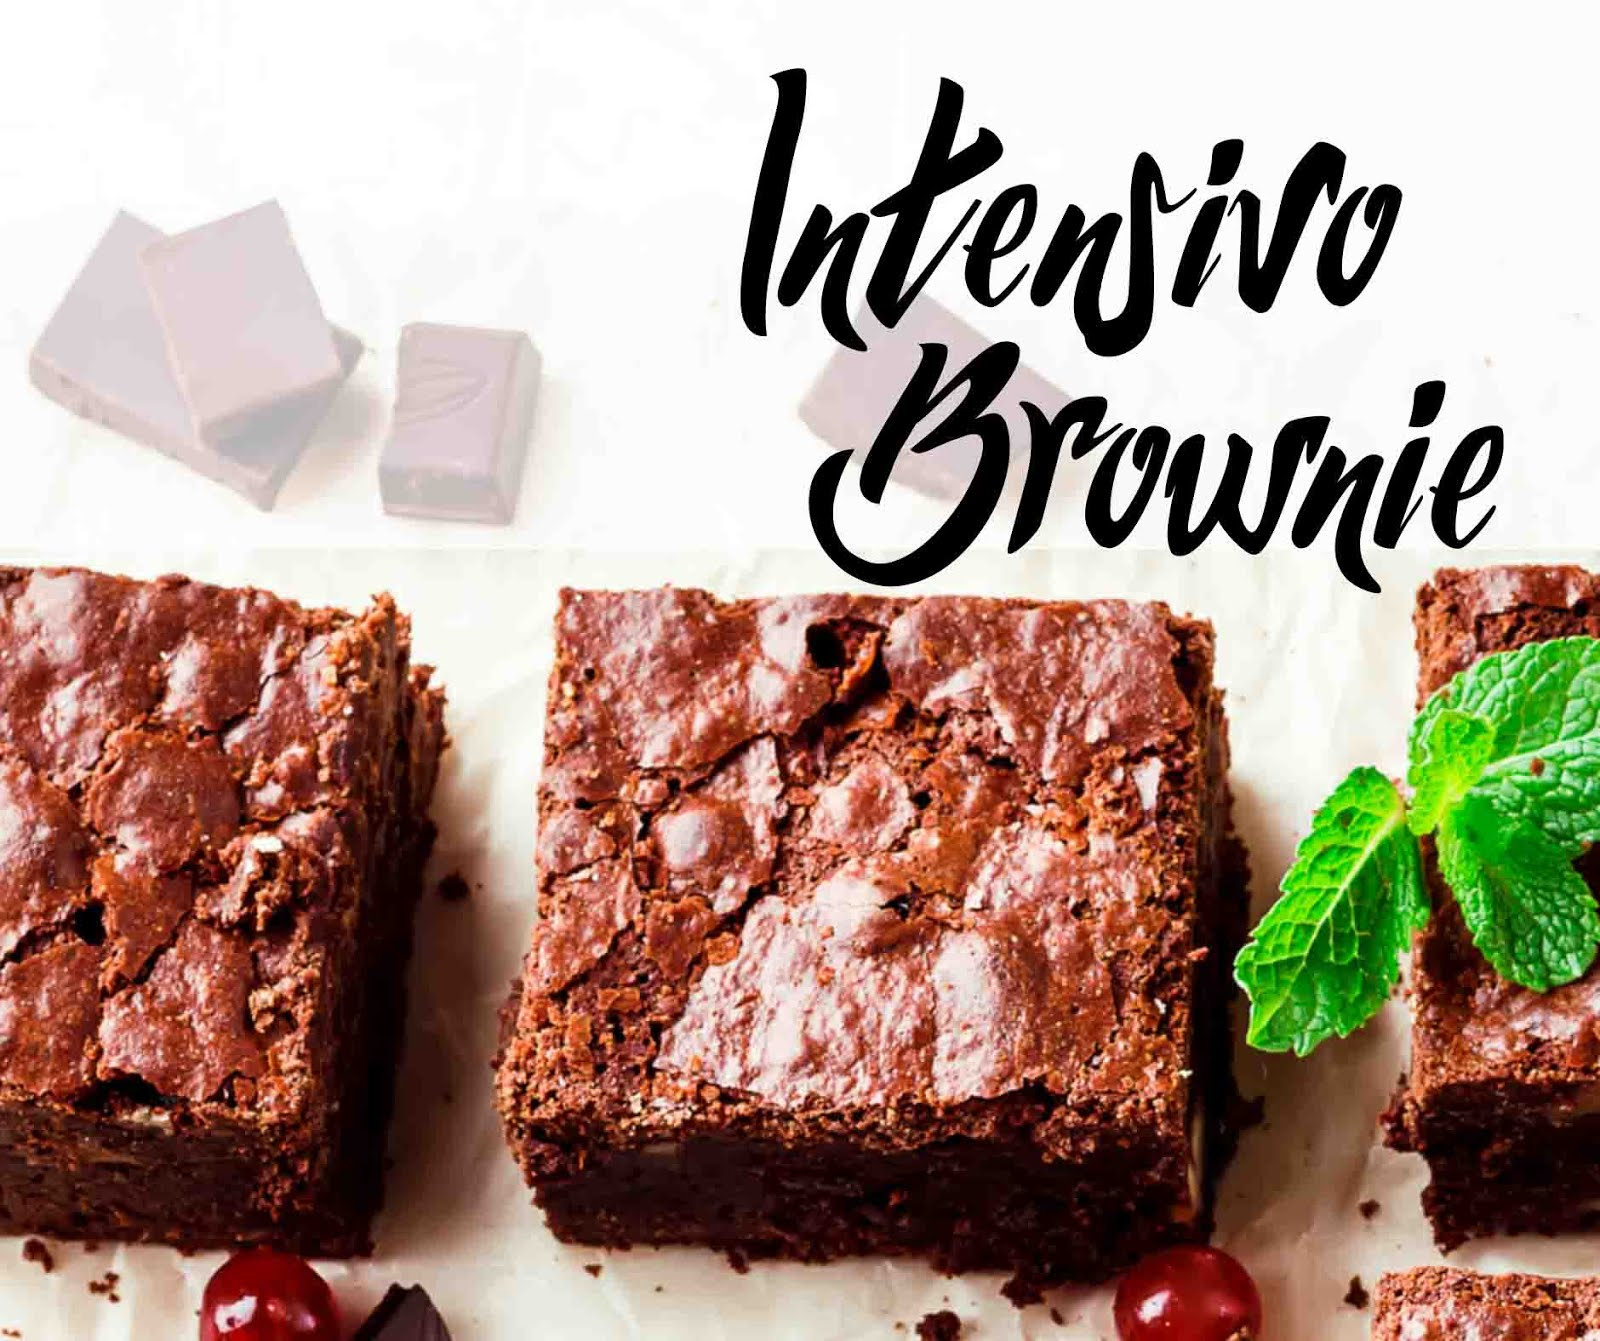 OS SEGREDOS PARA VENDER BROWNIES.